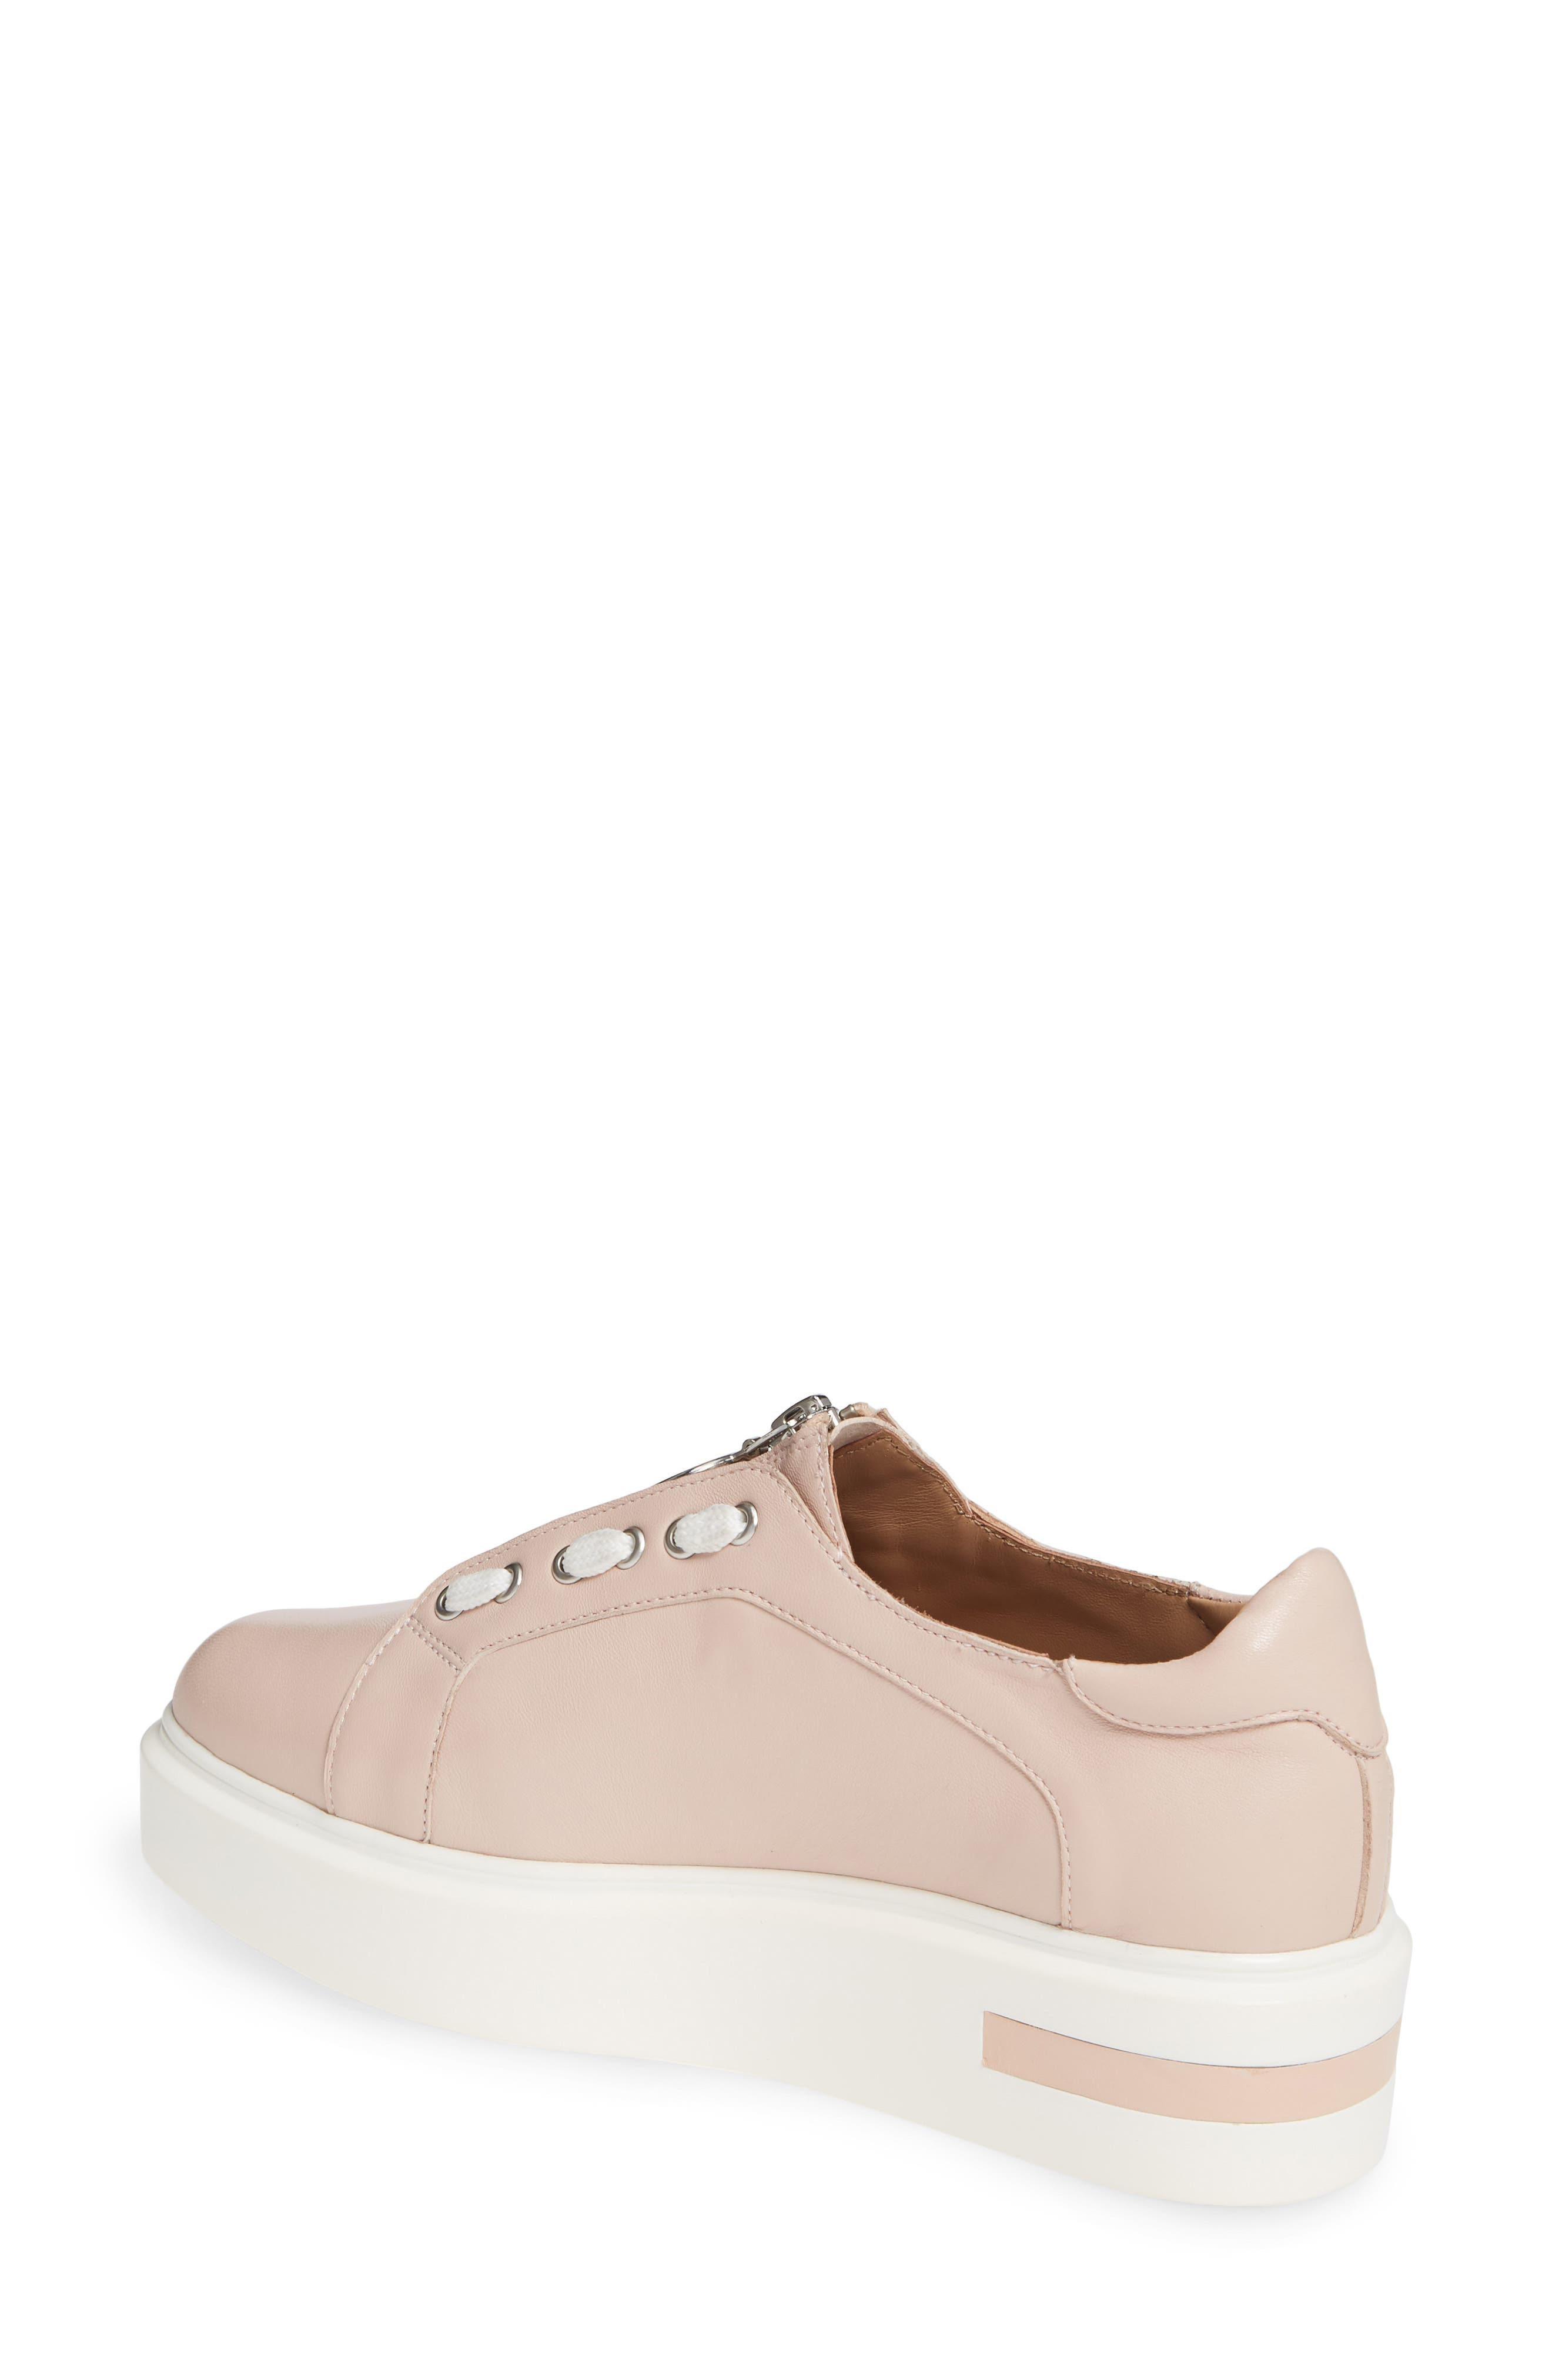 LINEA PAOLO,                             Killian Platform Sneaker,                             Alternate thumbnail 2, color,                             BLUSH LEATHER